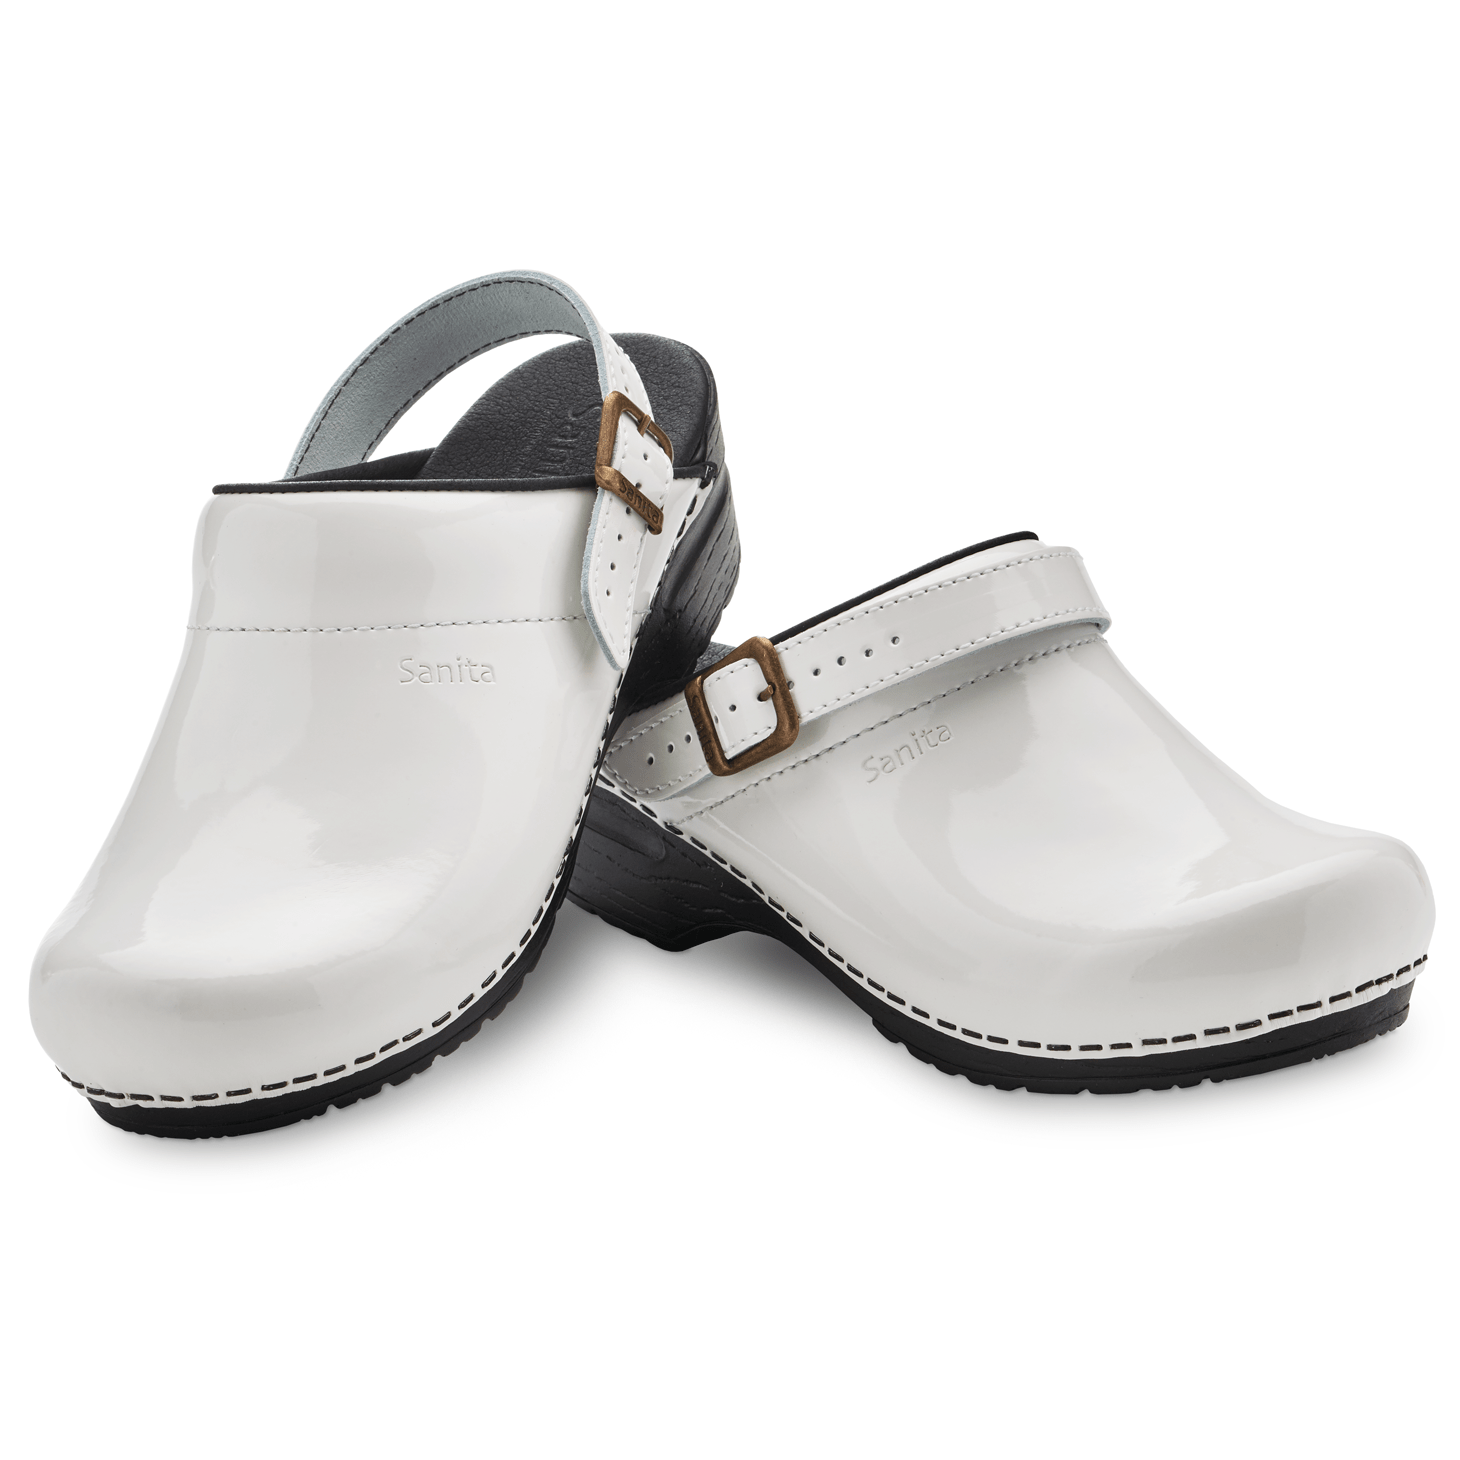 Sanita Estelle Women's Open Back Clog in White